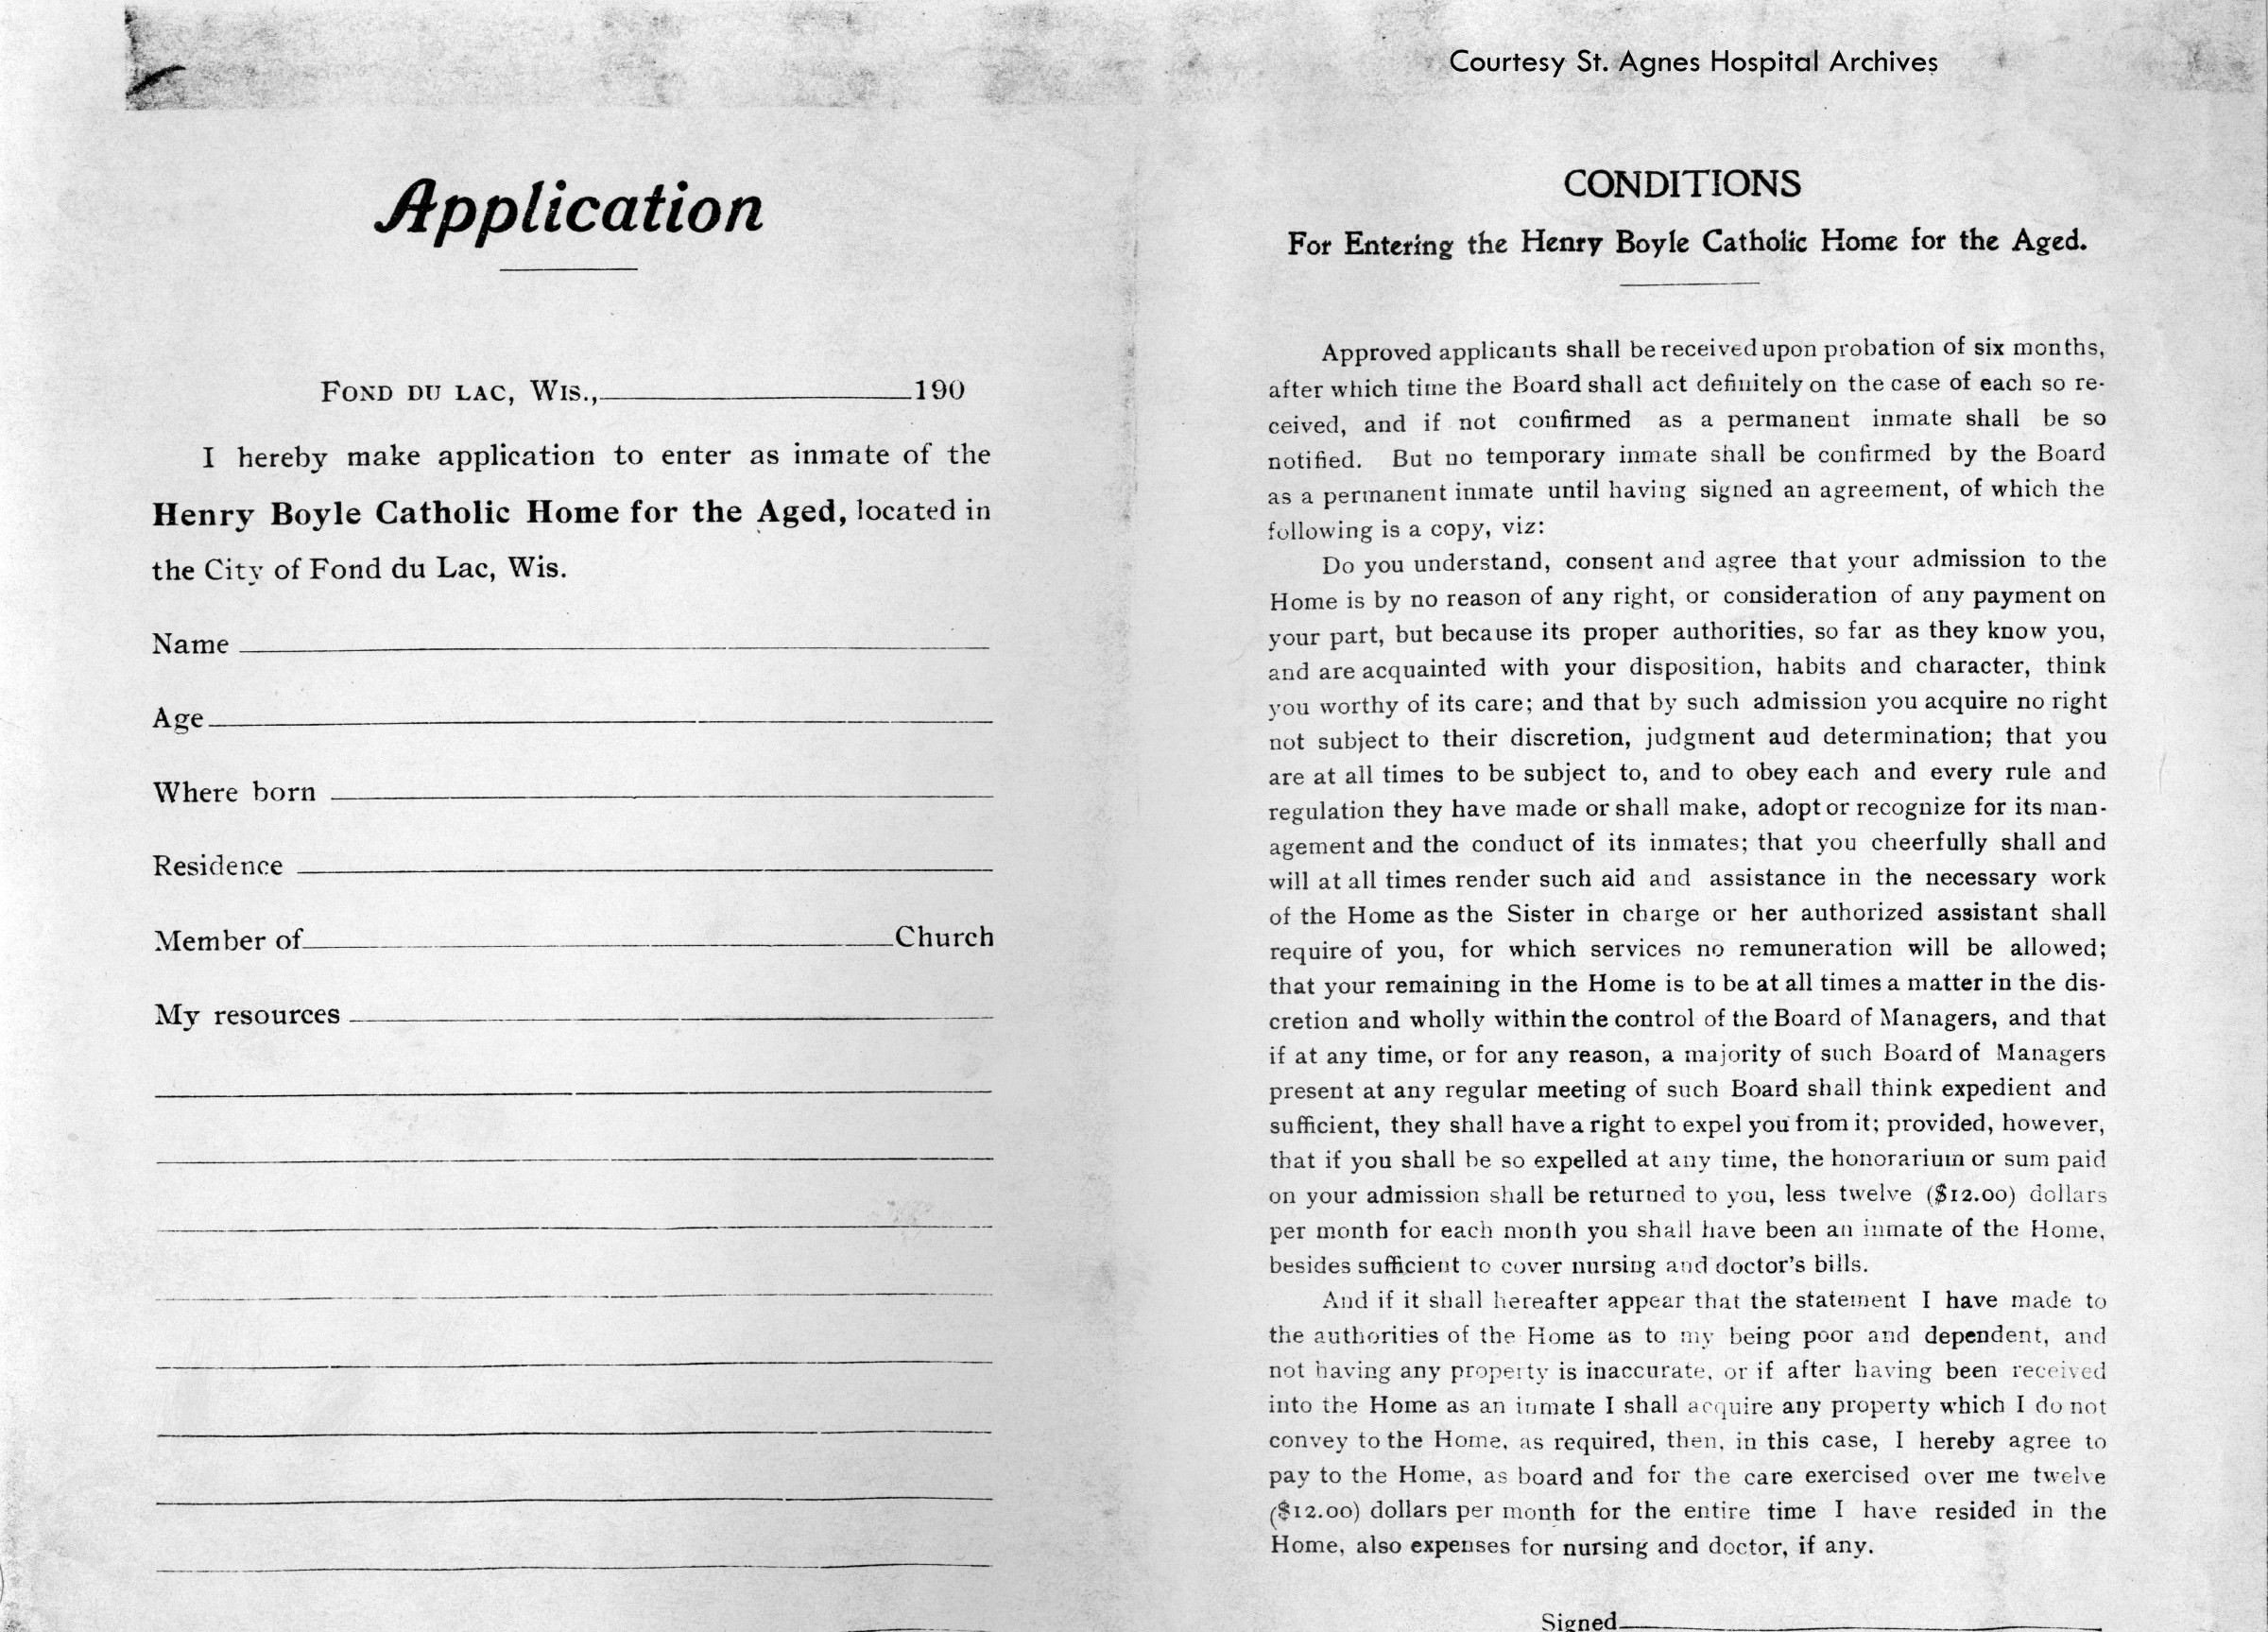 Application for Entering Henry Boyle Catholic Home for the Aged